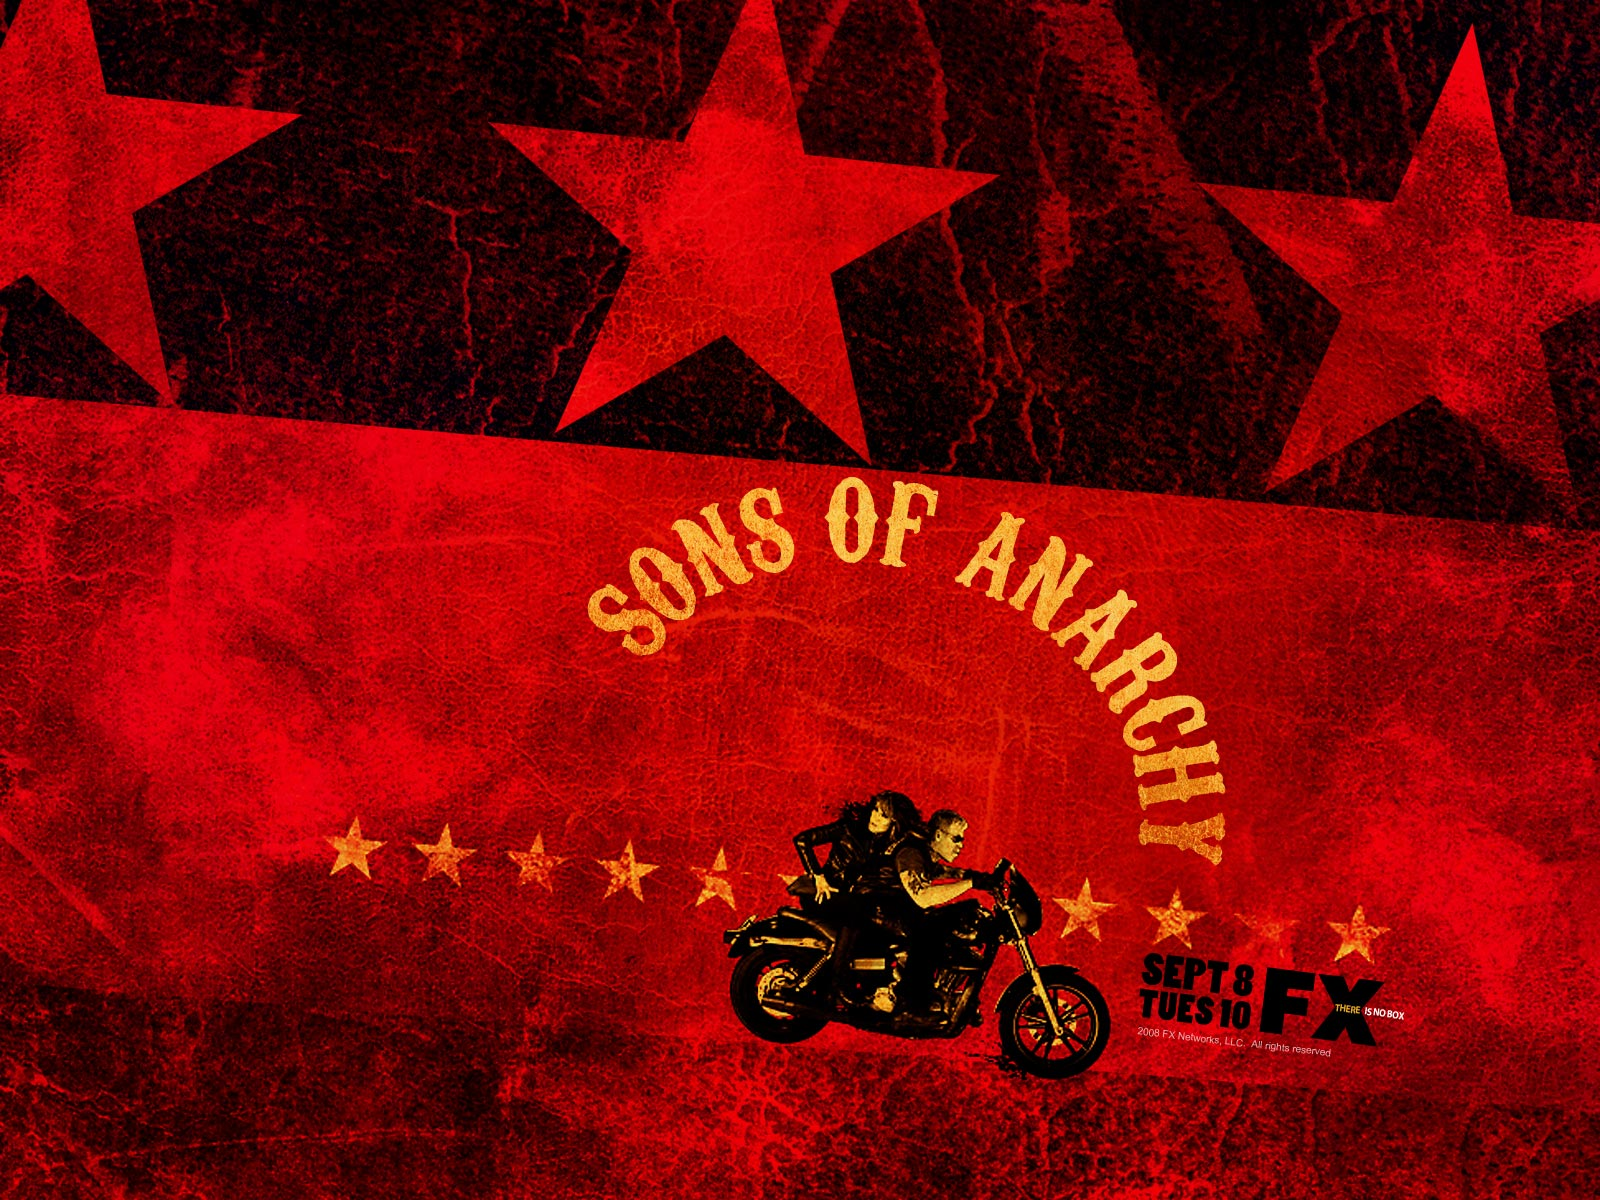 Sons of anarchy wallpaper and background image 1600x1200 id440329 tv show sons of anarchy sons of anarchy wallpaper voltagebd Choice Image